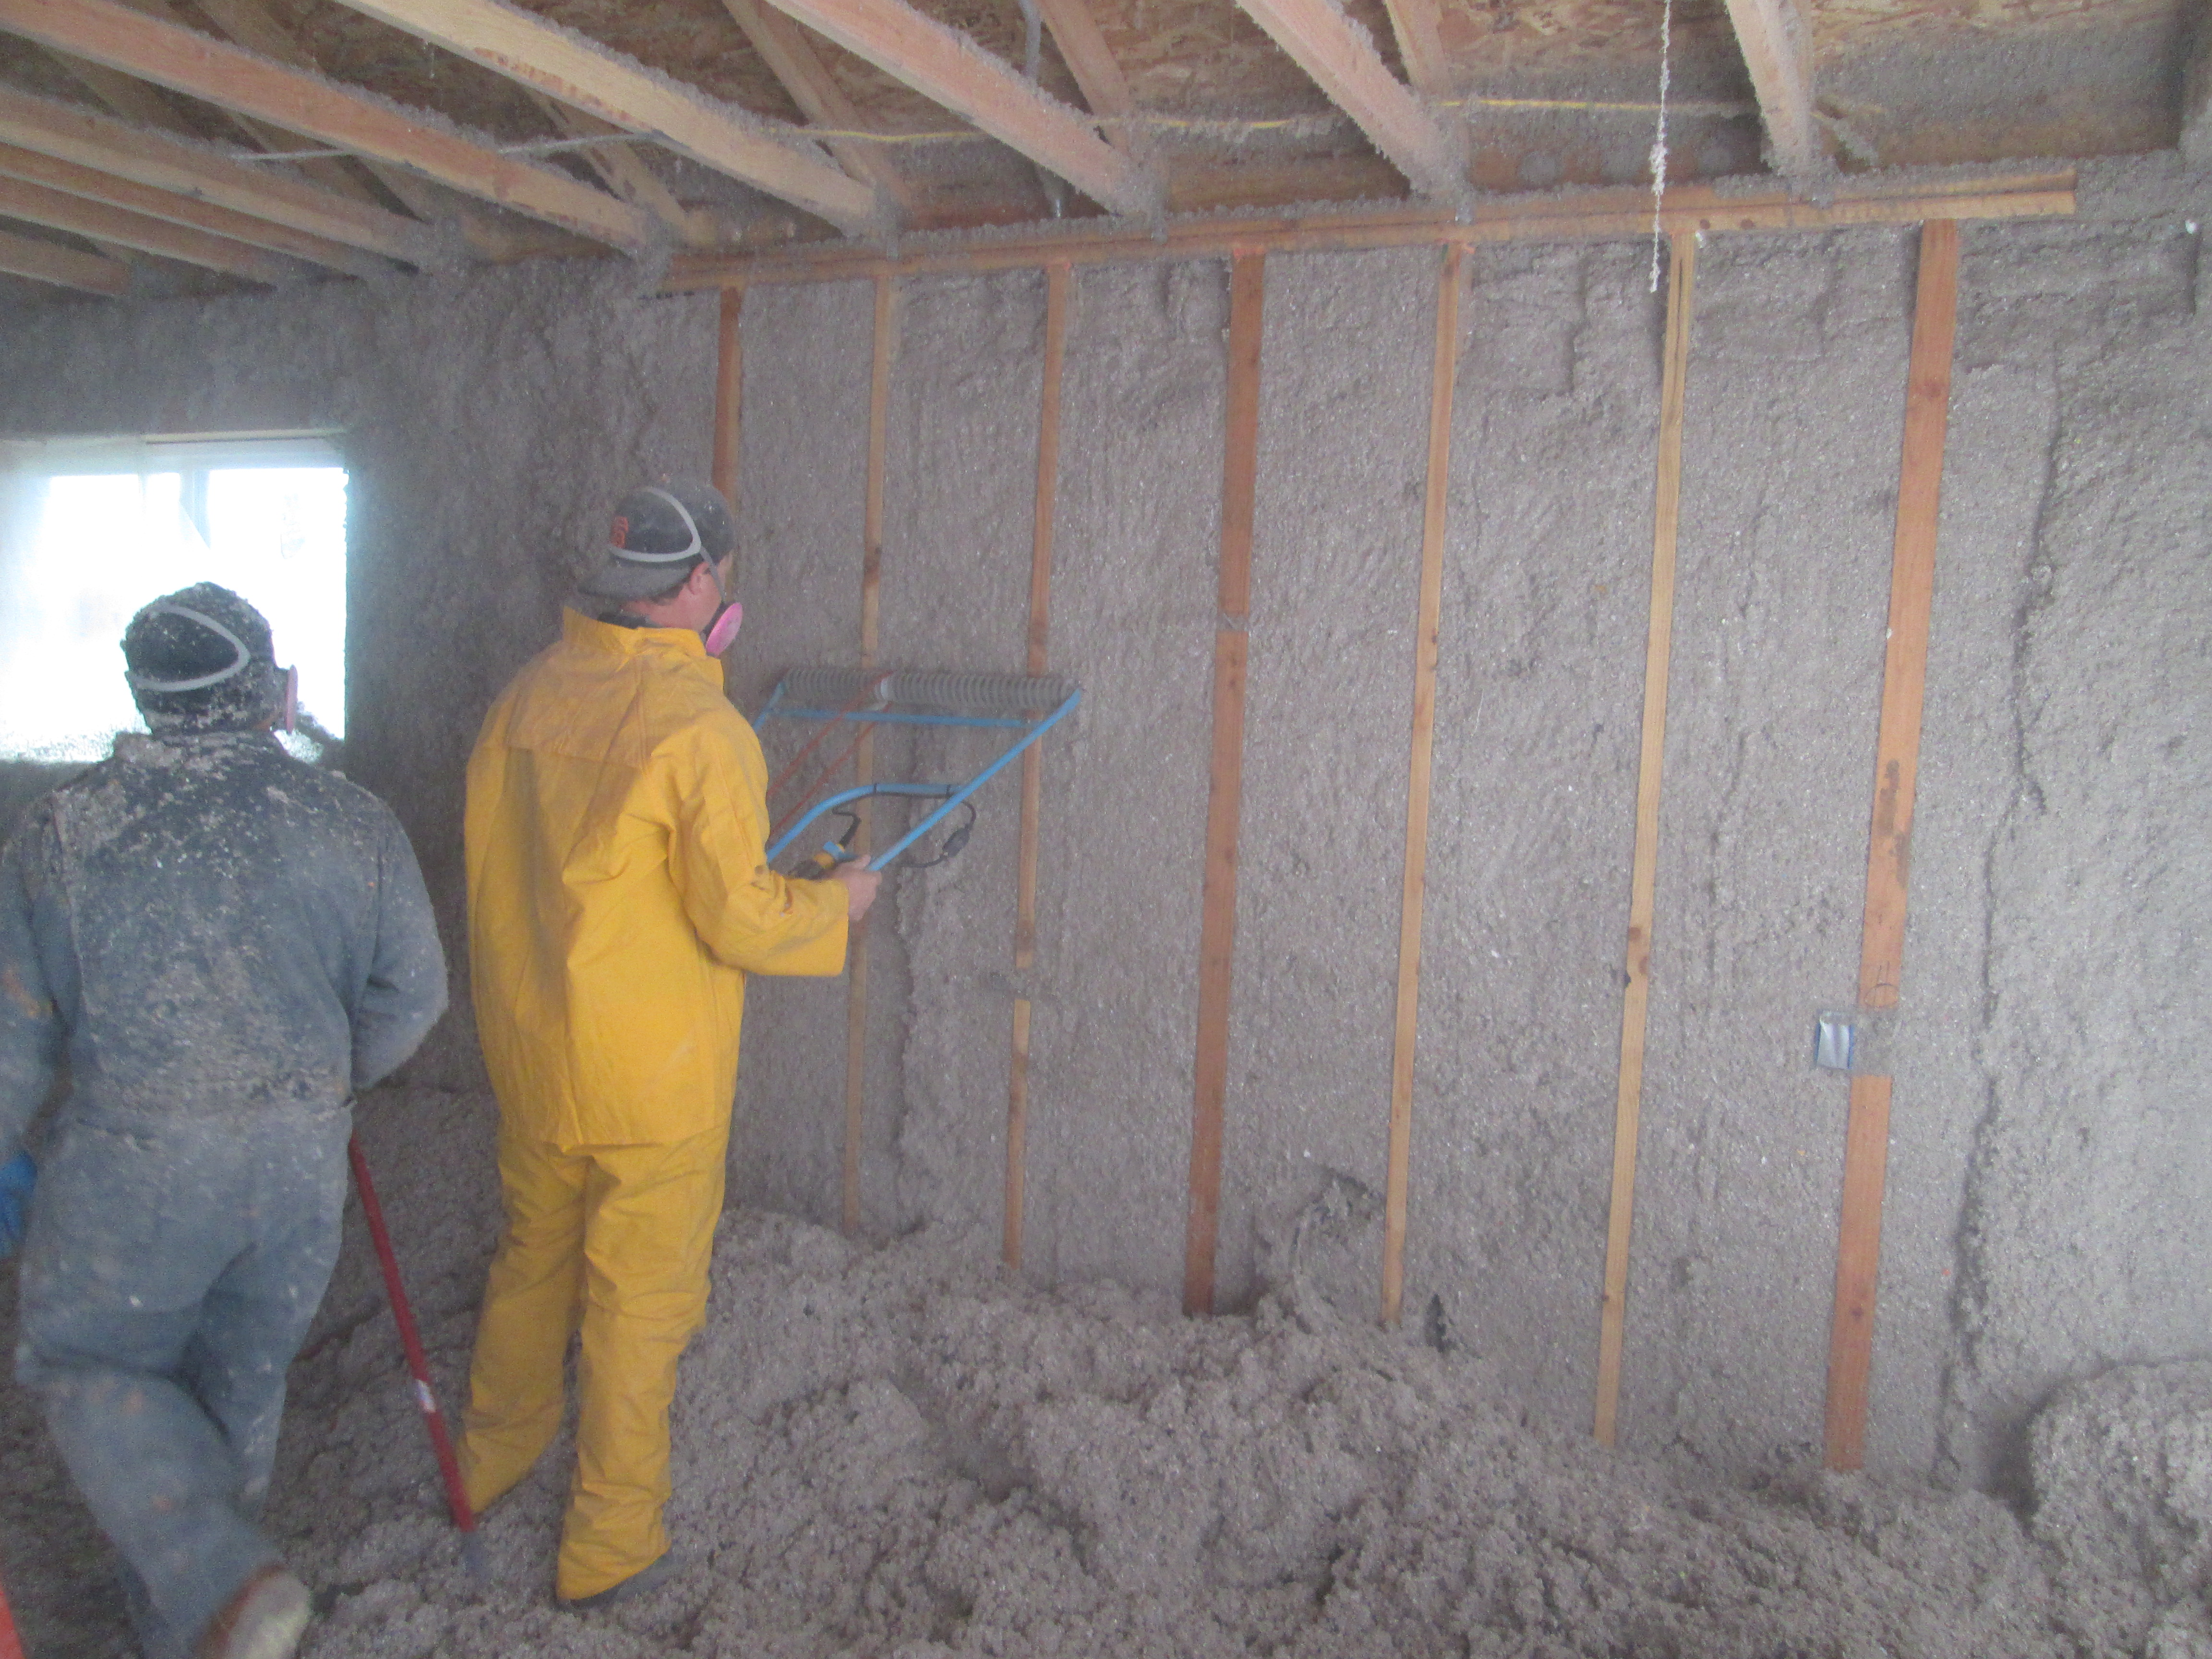 Wall Insulation Installation Video Net Zero Energy Eco Performance Builders